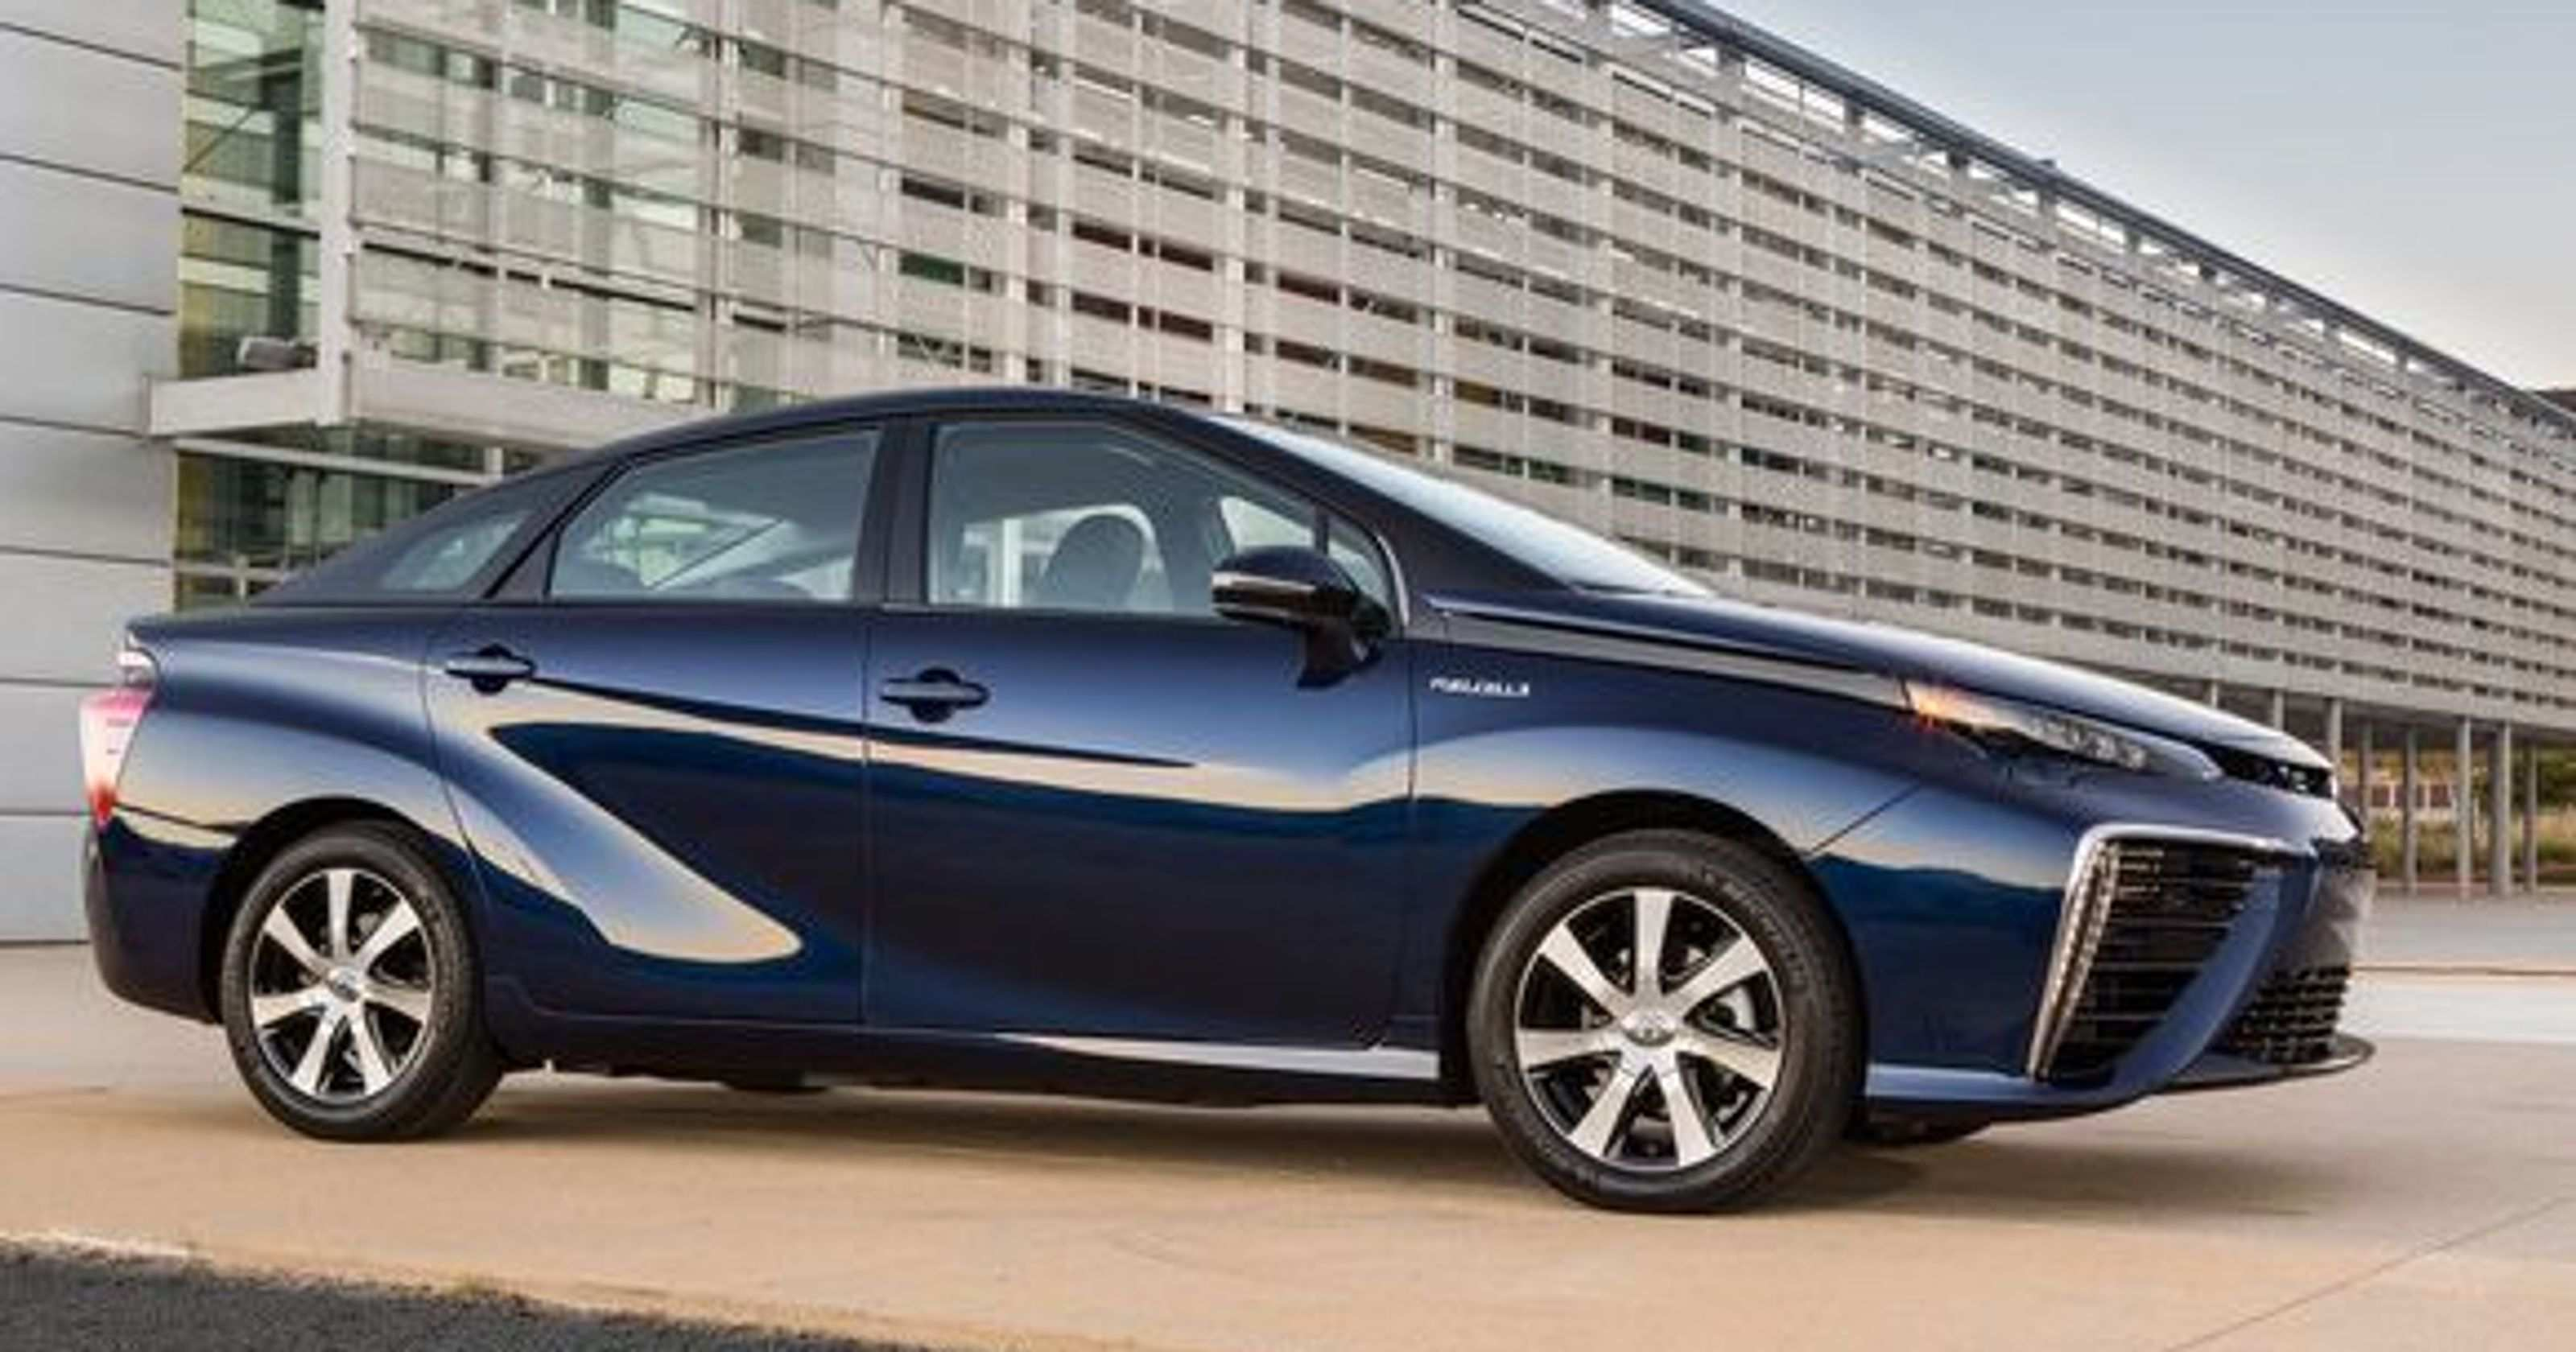 23 Gallery of 2020 Toyota Electric Car Specs and Review with 2020 Toyota Electric Car